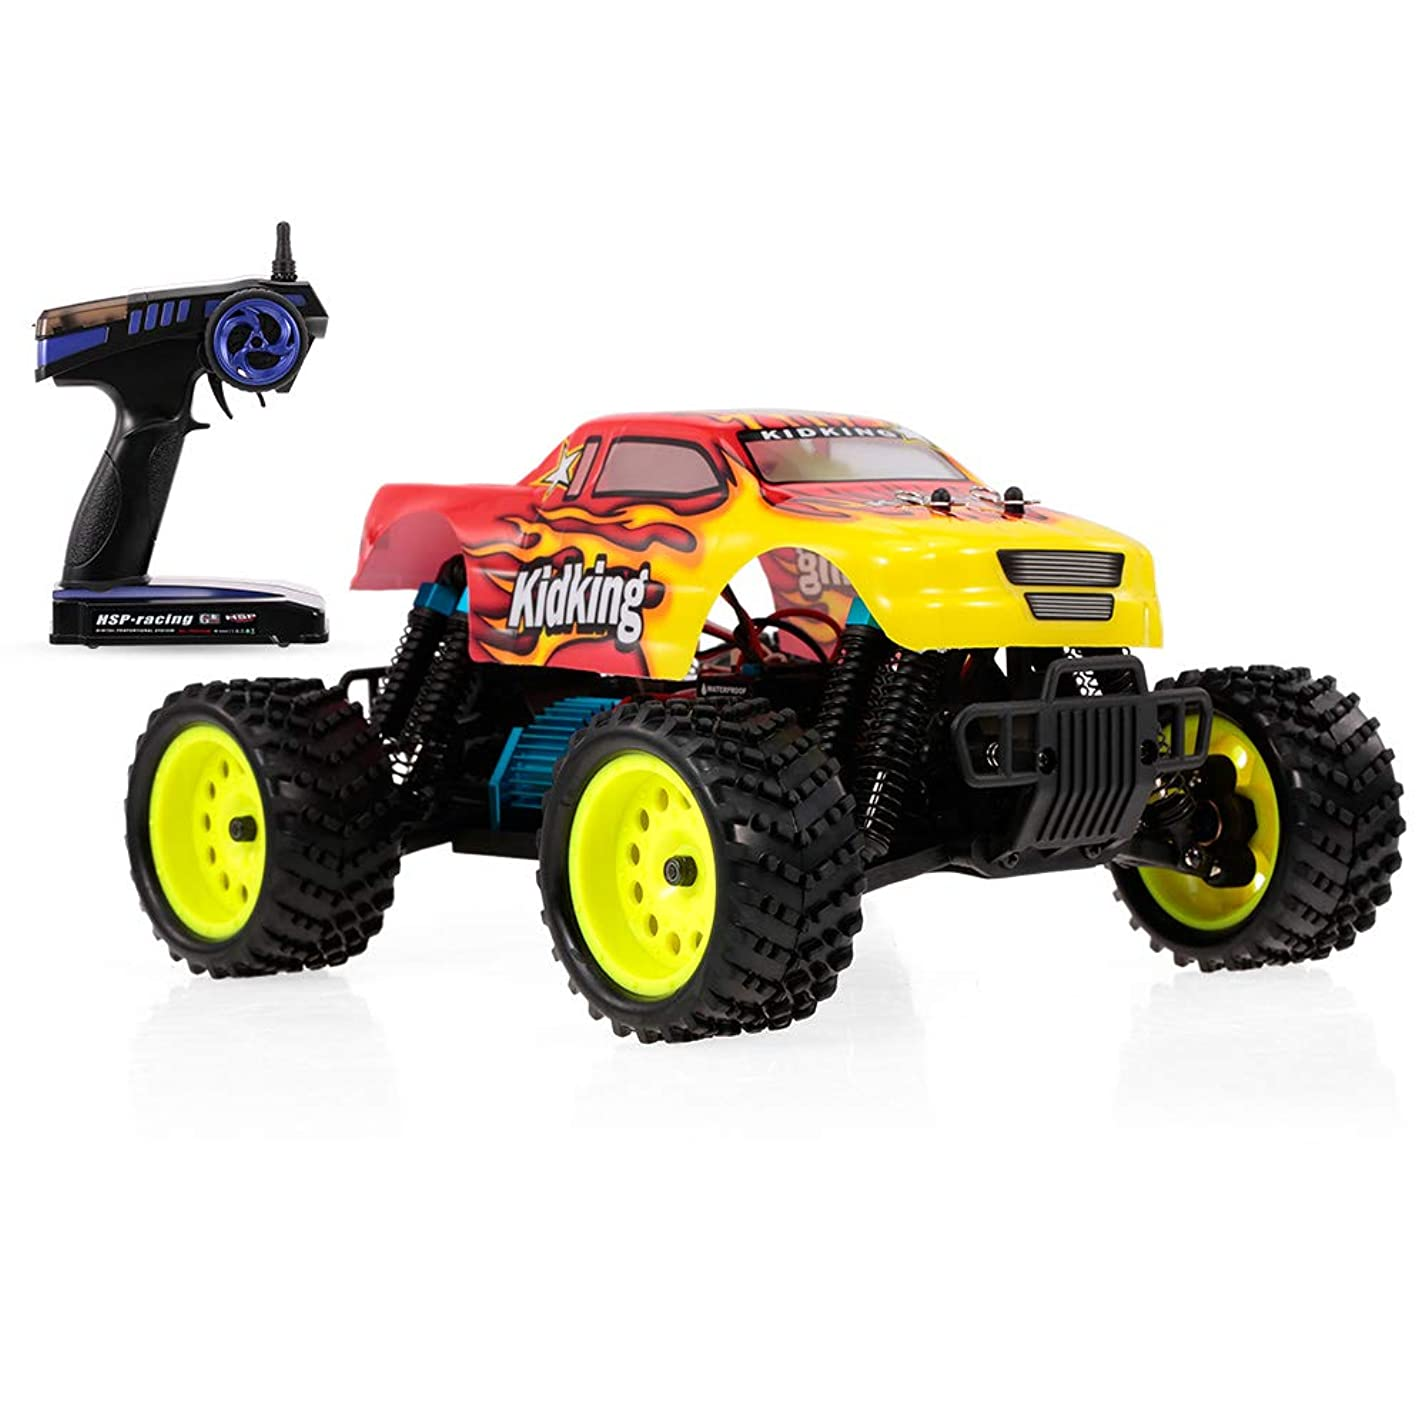 HSP No.94186 RC Car Kidking 1/16 4WD High Speed Off-road Monster Truck RTR Electric Racing Car RC Toy for Kids gdi161079866290